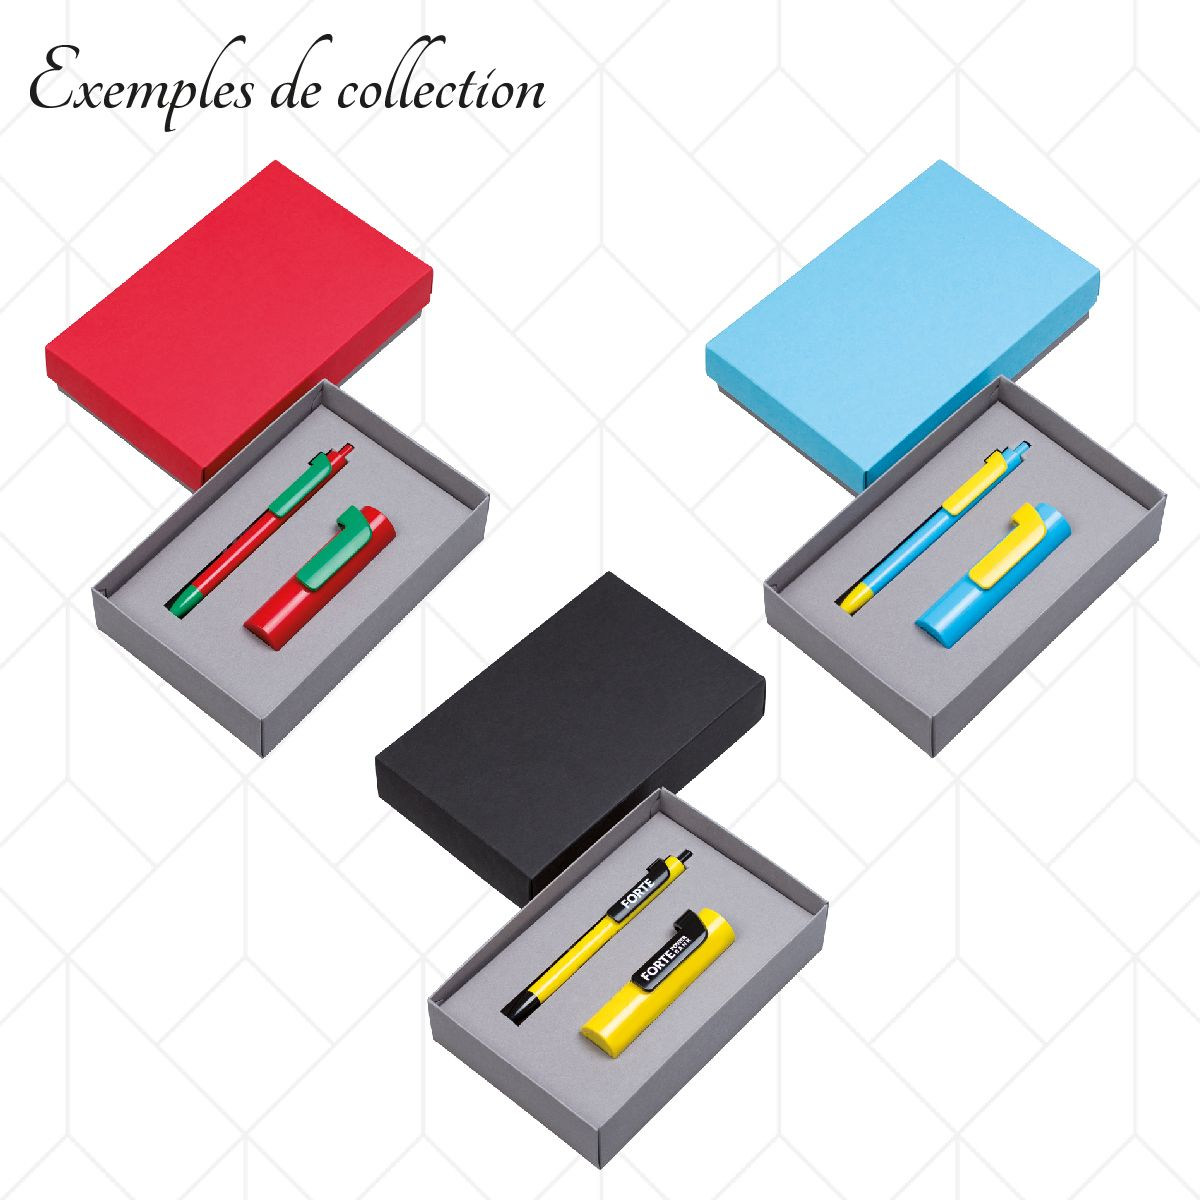 collection-pocket-color-exemples